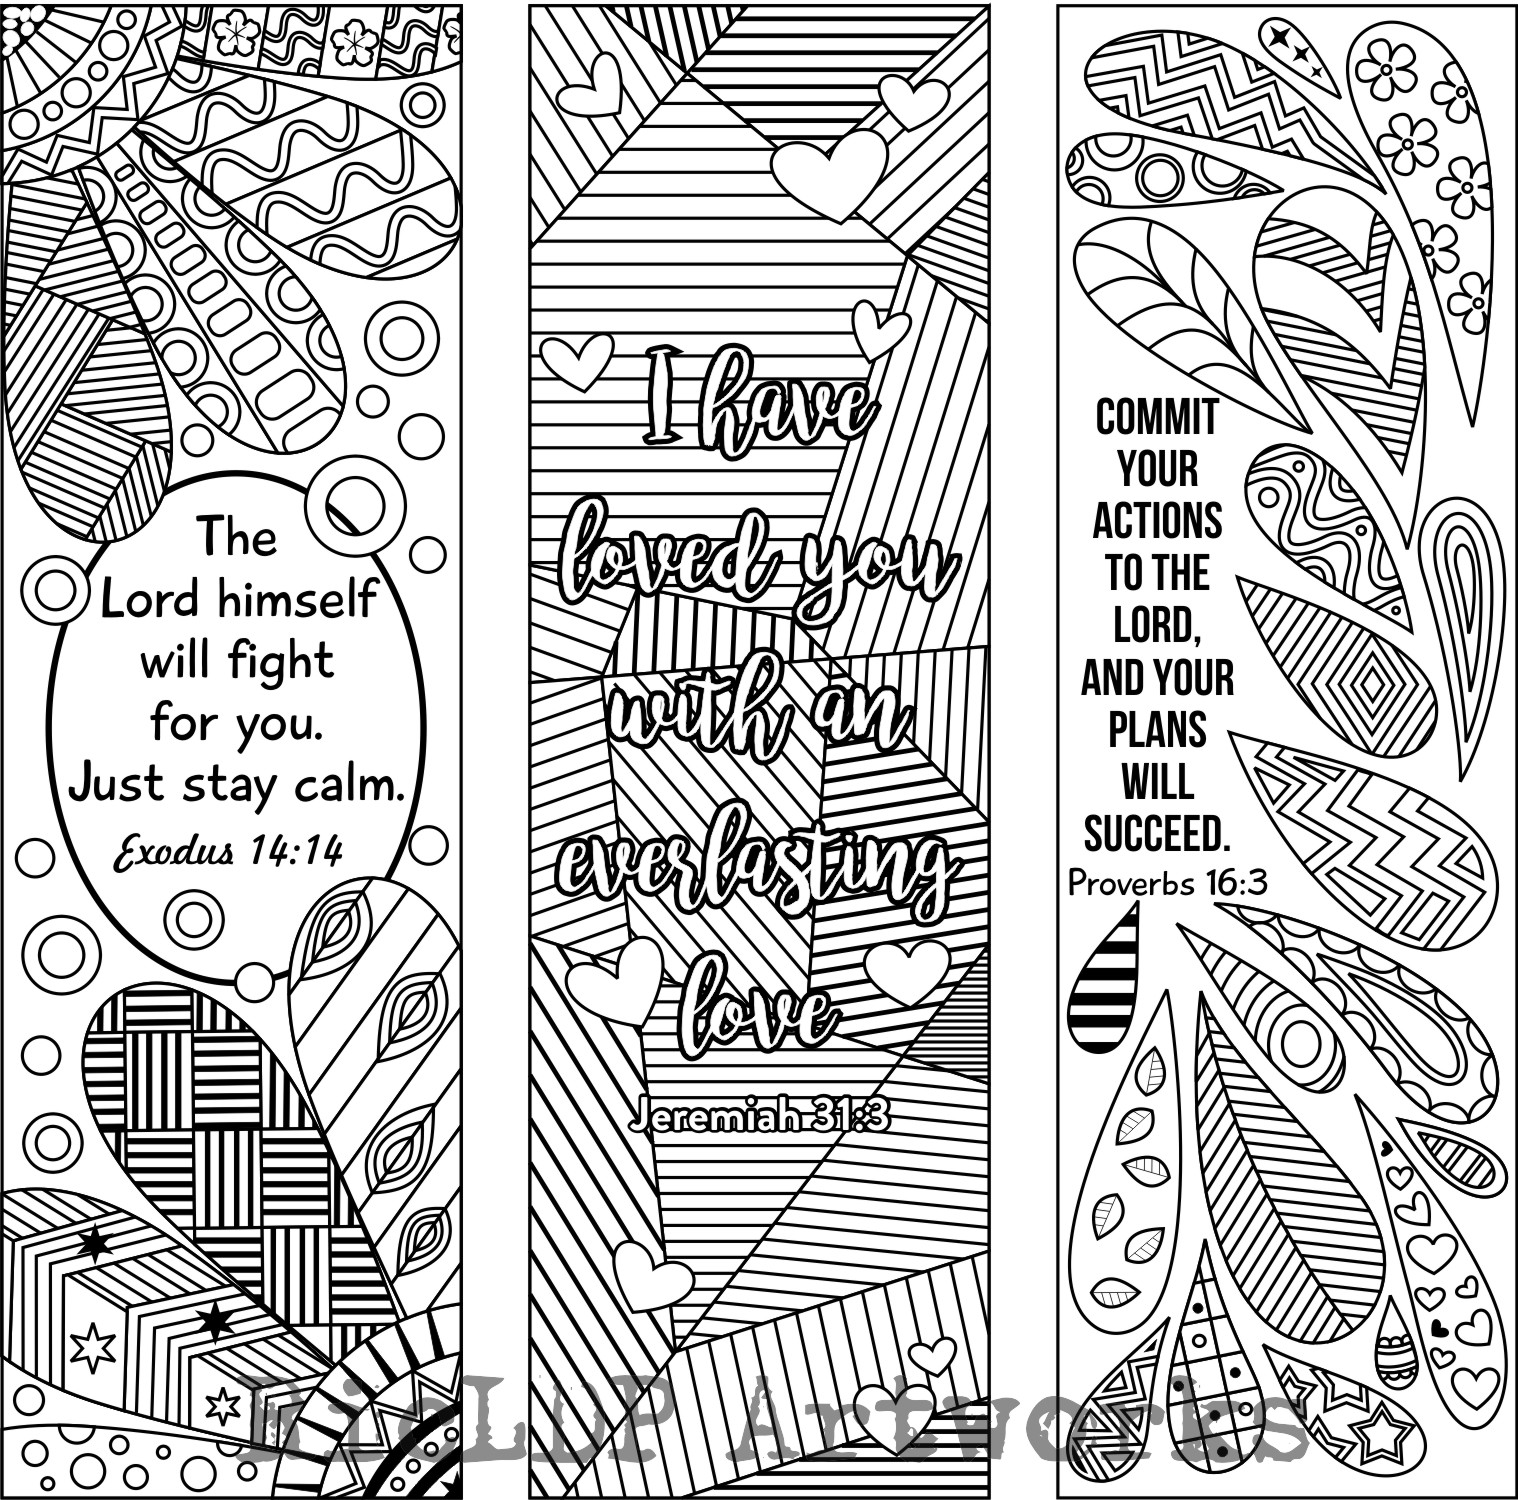 coloring bookmark template ricldp artworks six bible verse coloring bookmarks template bookmark coloring